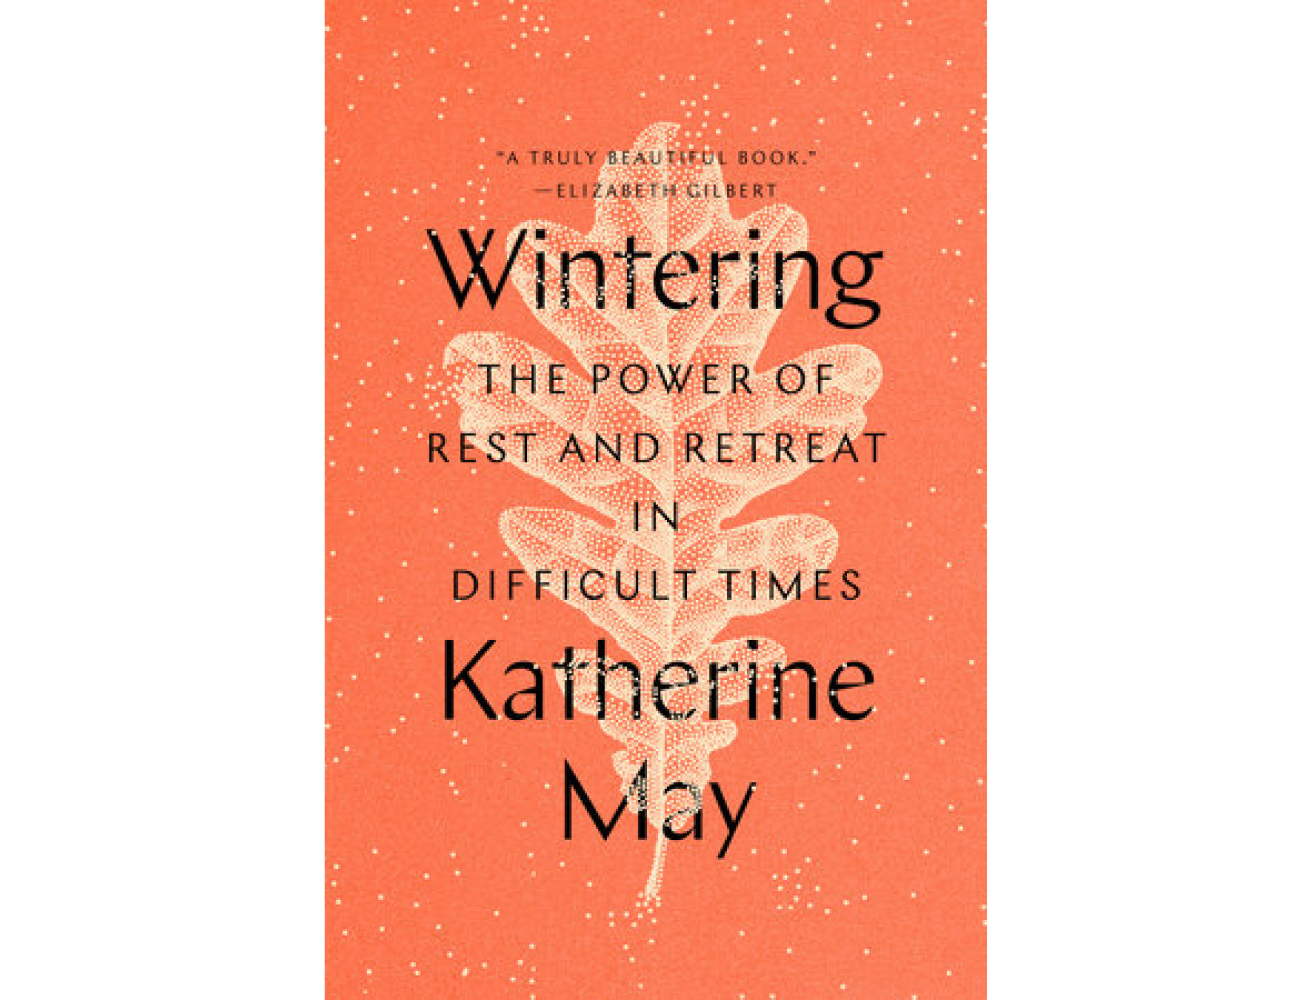 "<em> Wintering </em> de Katherine May""/></a> <div> <h3><a href="